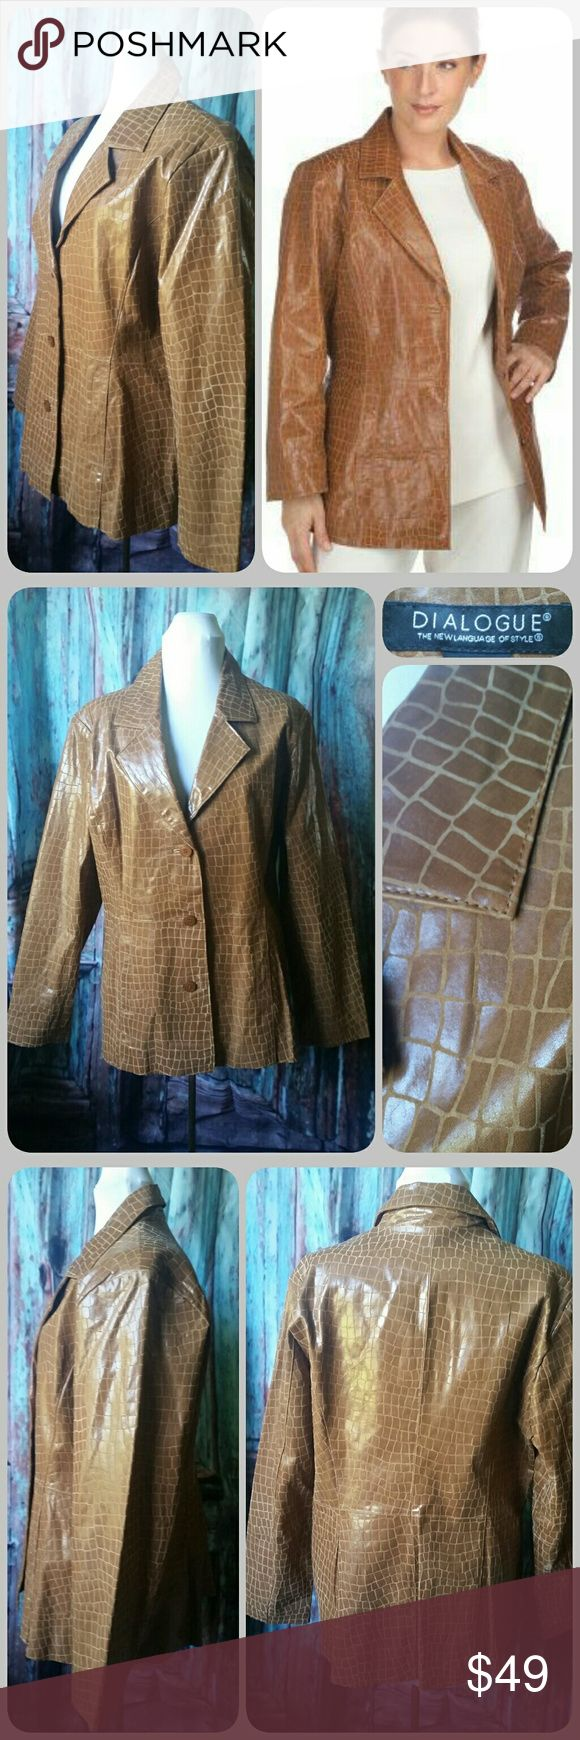 """DIALOGUE (for QVC) leather blazer """"Elegant and exotic, this leather jacket is one to own.  XL(18-20), Semi-fitted; length measurements XL  Shell 100% croco-embossed leather; lining 100% polyester. Professionally dry clean by leather or suede method only"""" -QVC  NWT. Marked XL which is 18/20 by QVC website (see sizing picture above) Dialogue Jackets & Coats"""